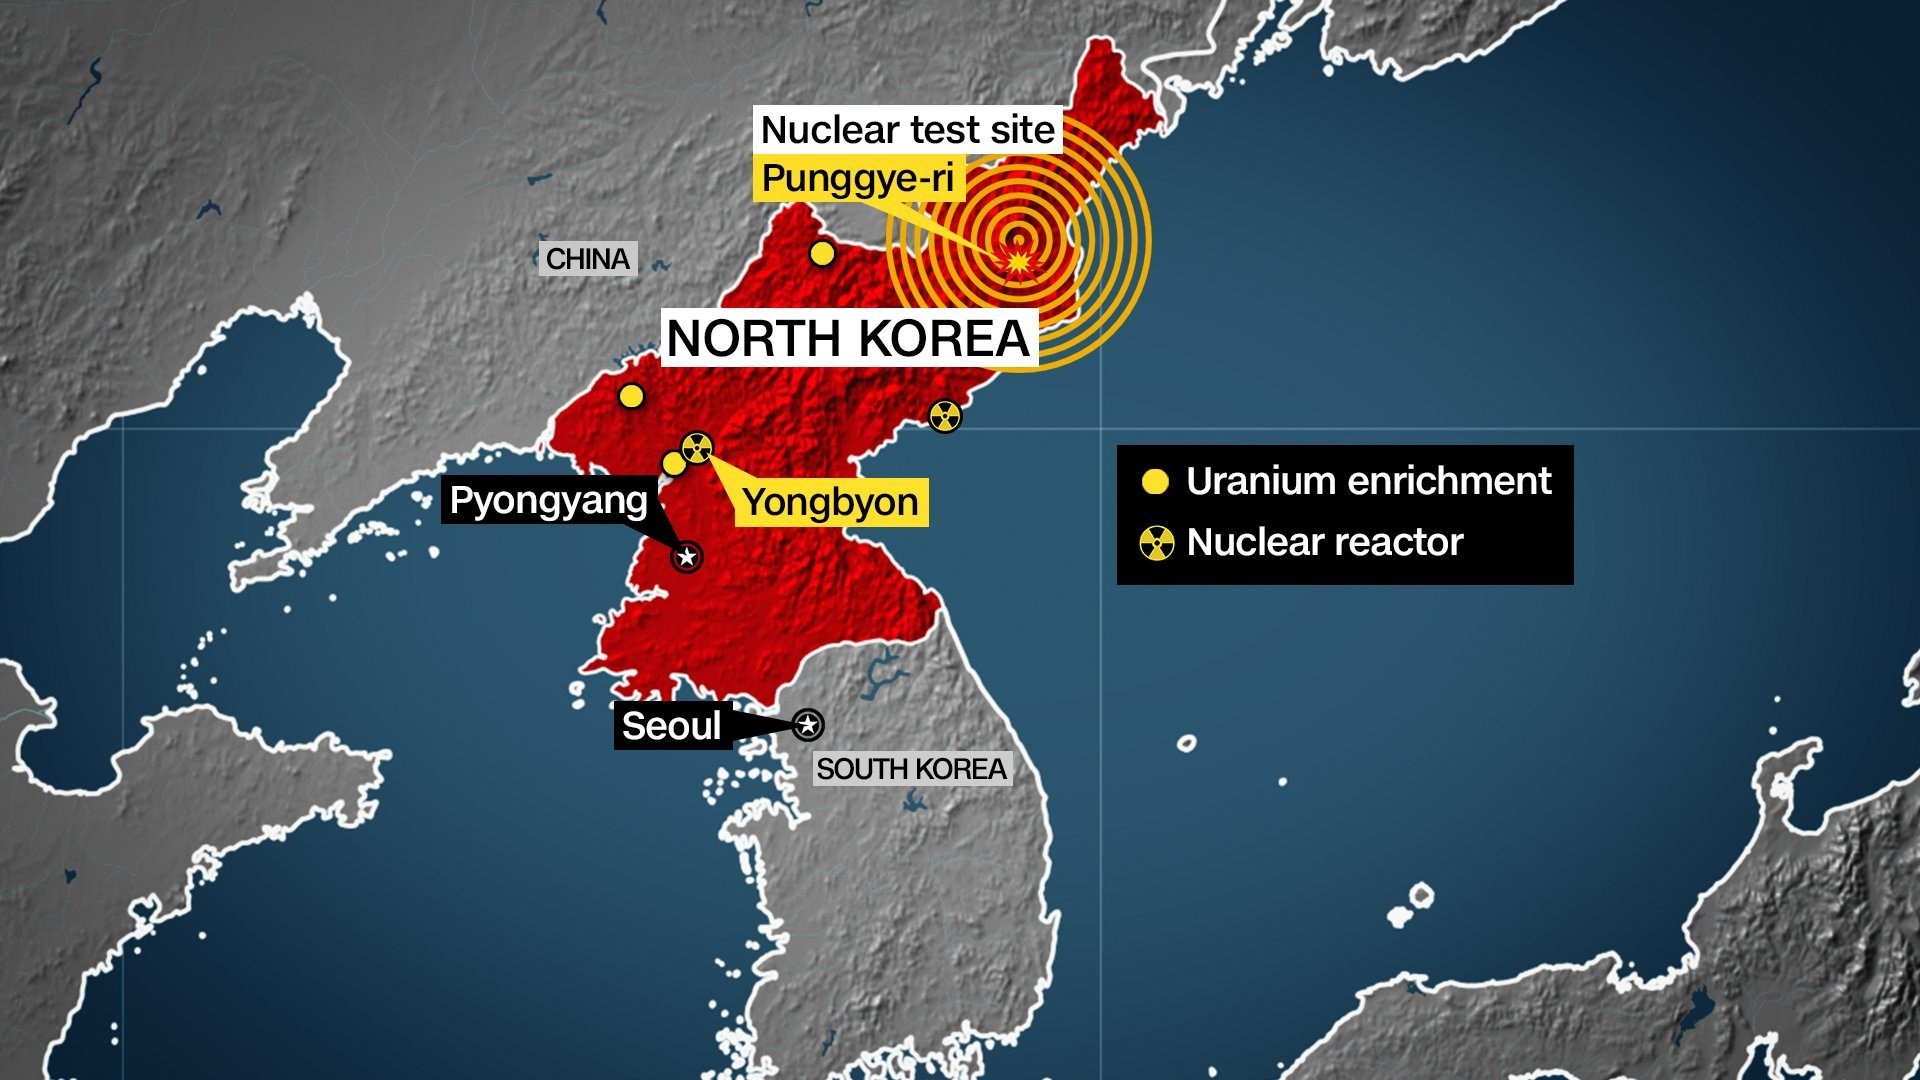 Korea: Temblor Detected in North Korea Not a Nuclear Blast